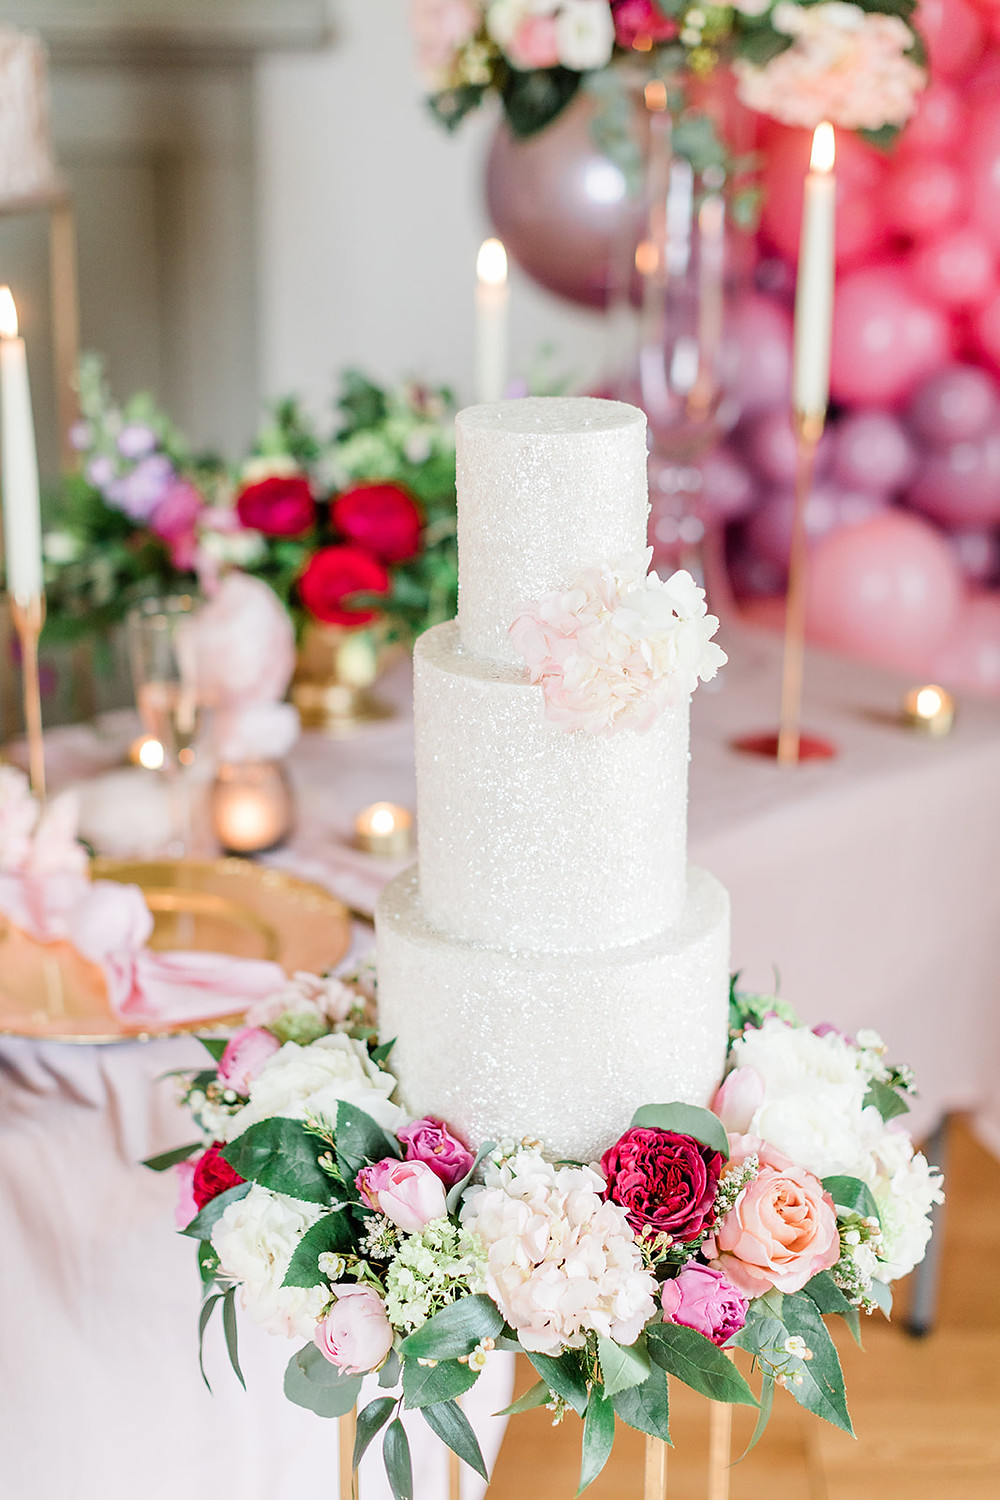 Table Beautifully decorated for a wedding meal with flowers, centrepieces, props in gold and pink. Capheaton Hall Northumberland. wedding Cake